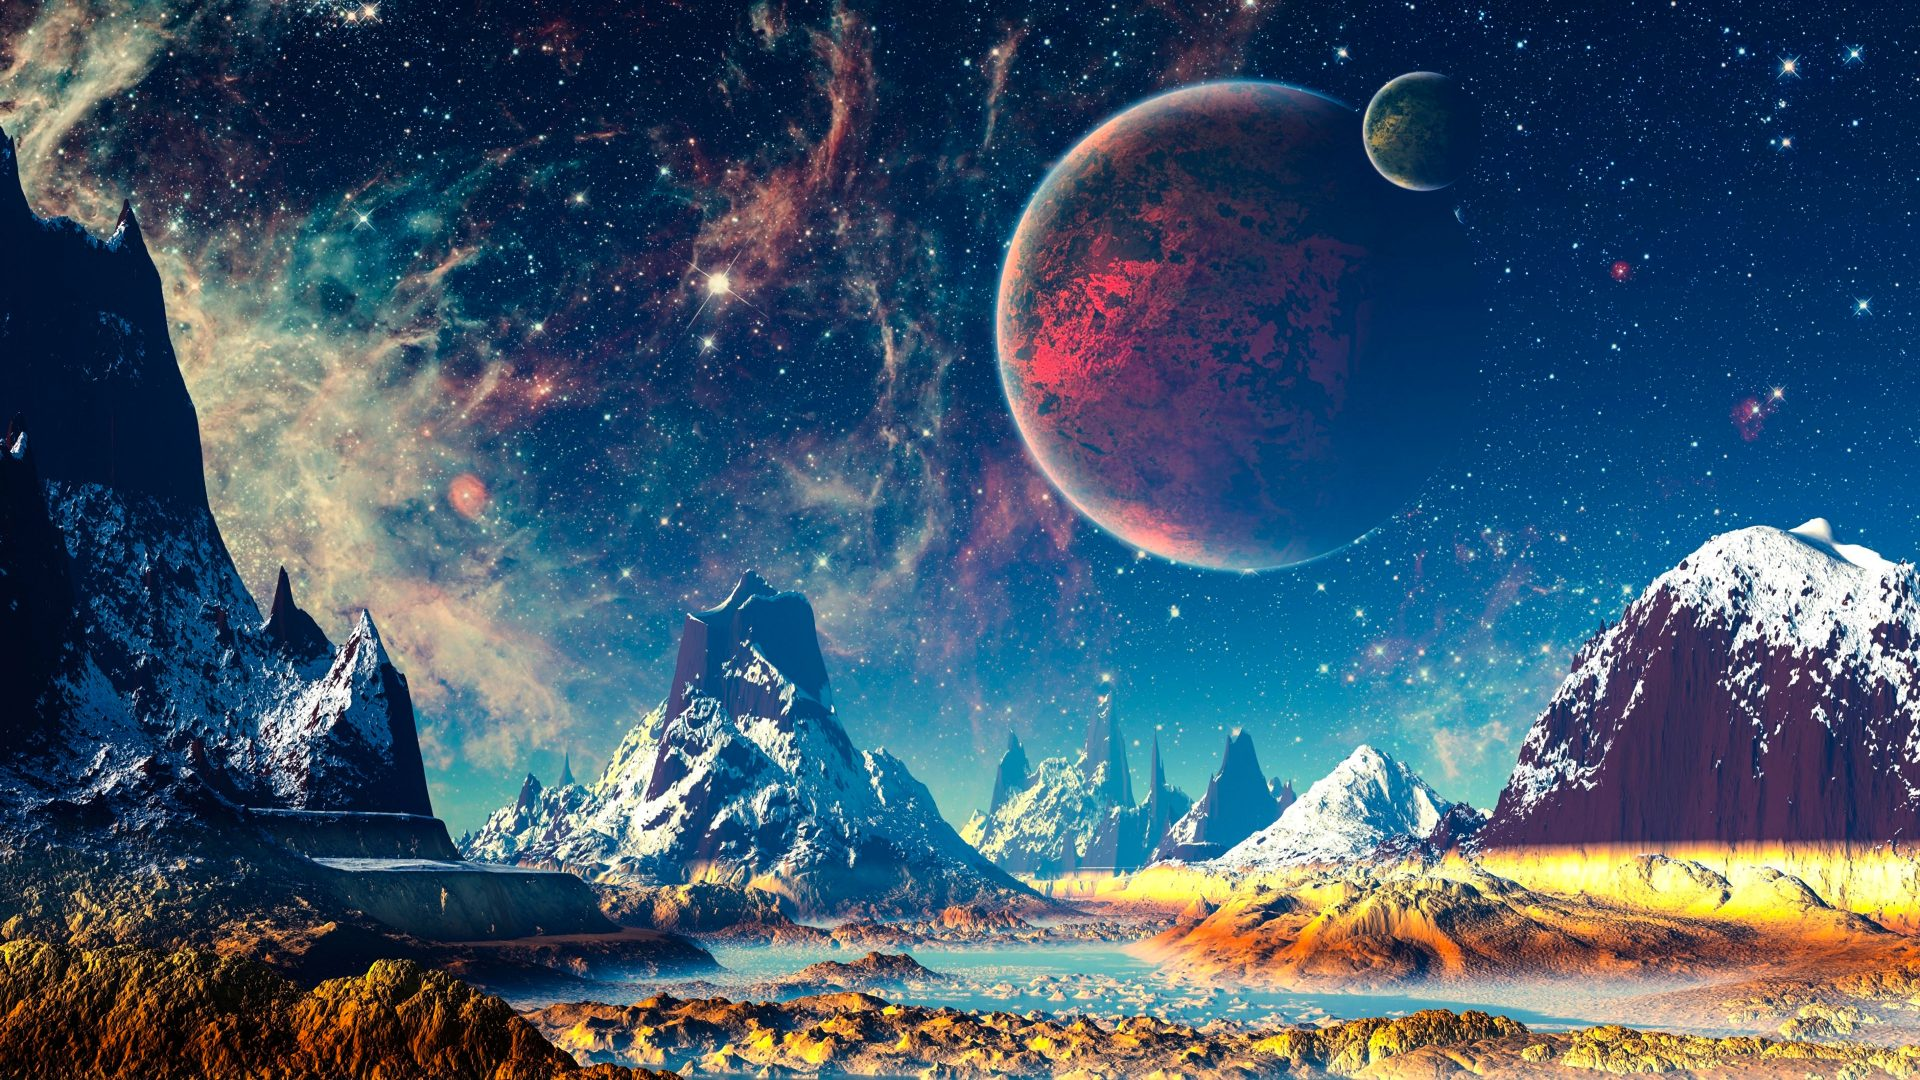 Fantasy World Mountains River Planets Stars 4K Wallpaper ...